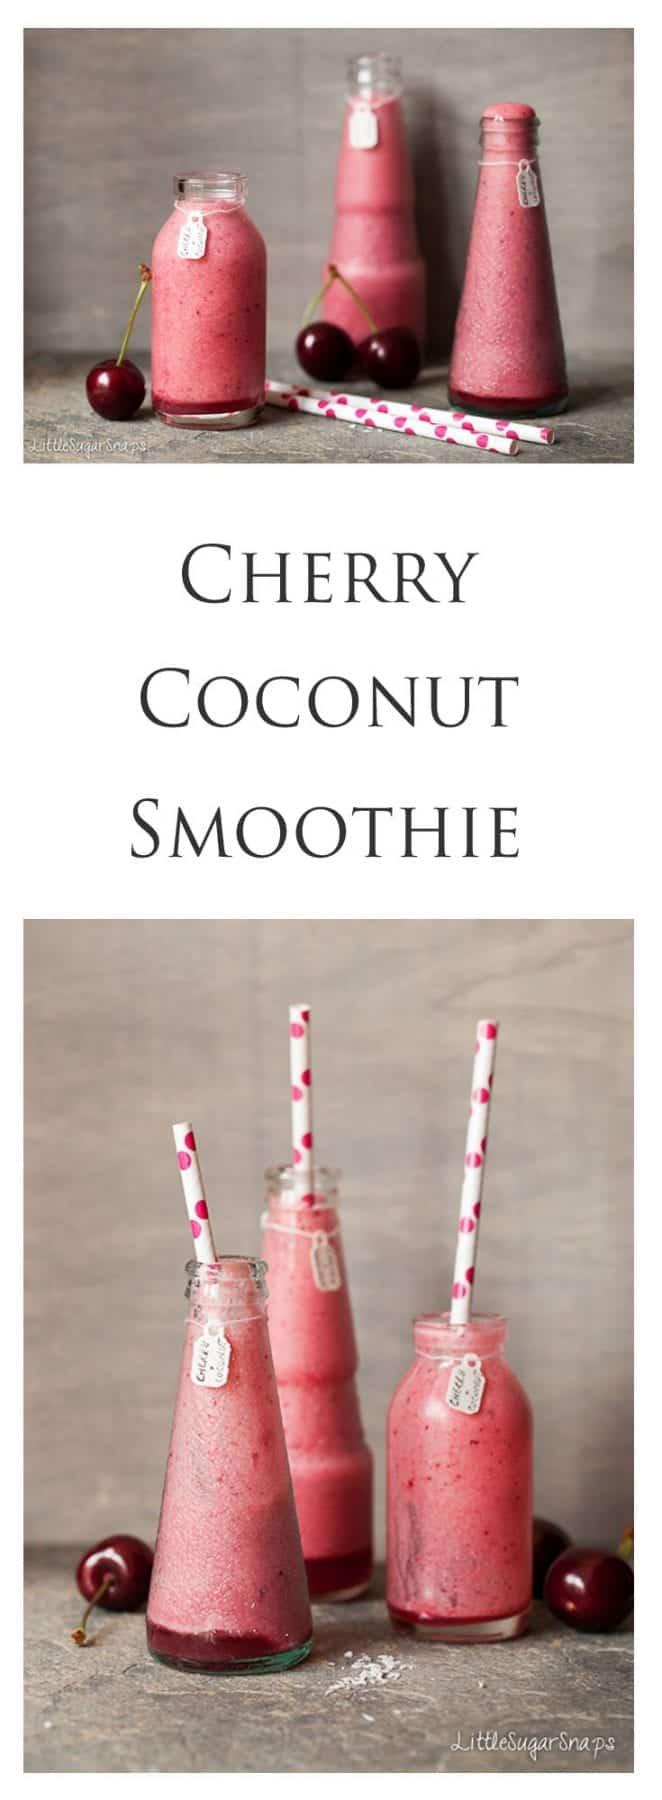 Cherry Coconut Smoothie - Littlesugarsnaps